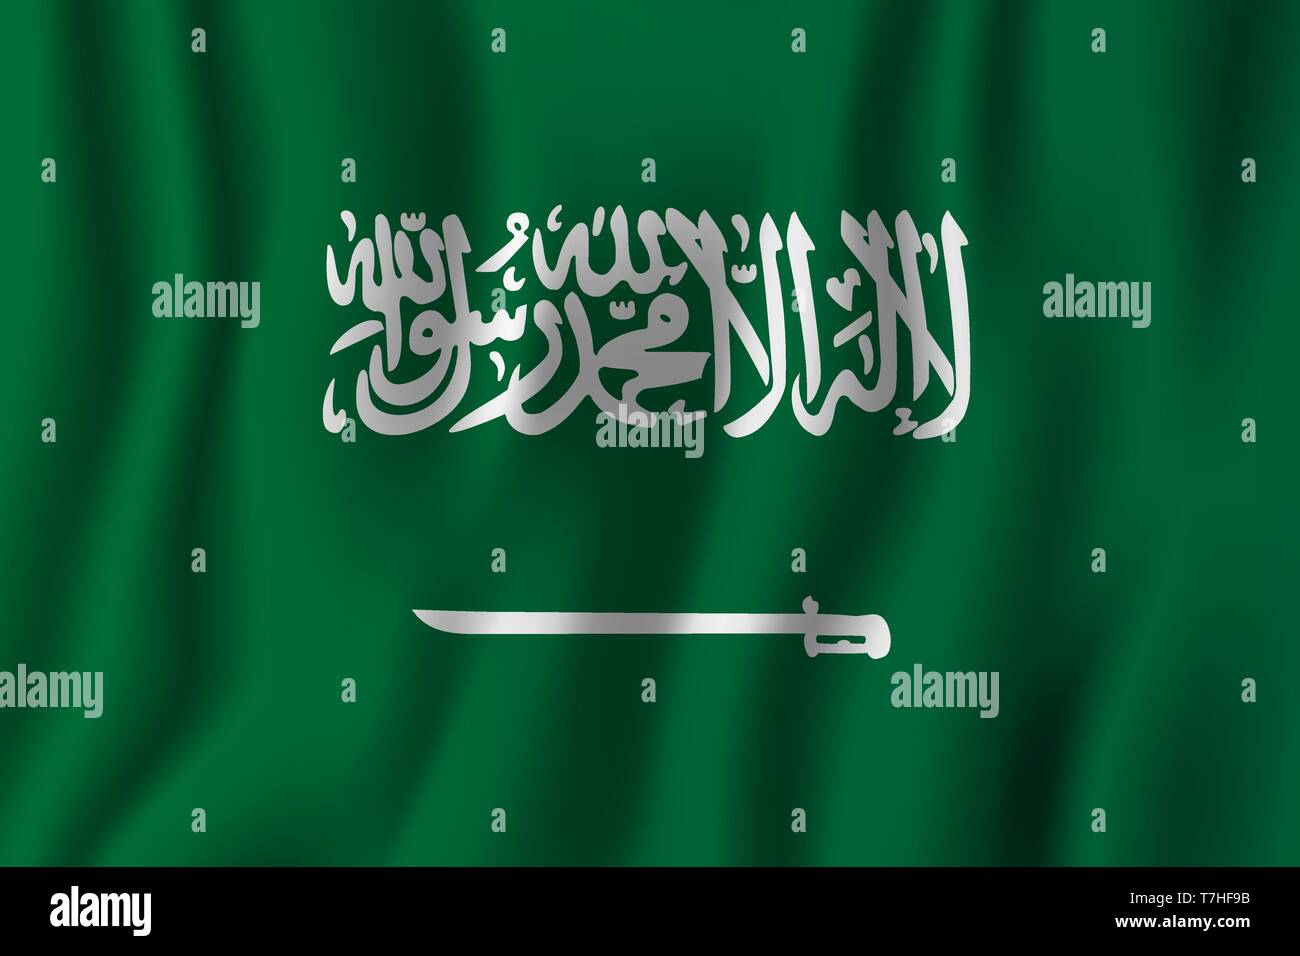 Saudi Arabia realistic waving flag vector illustration. National country background symbol. Independence day. - Stock Vector